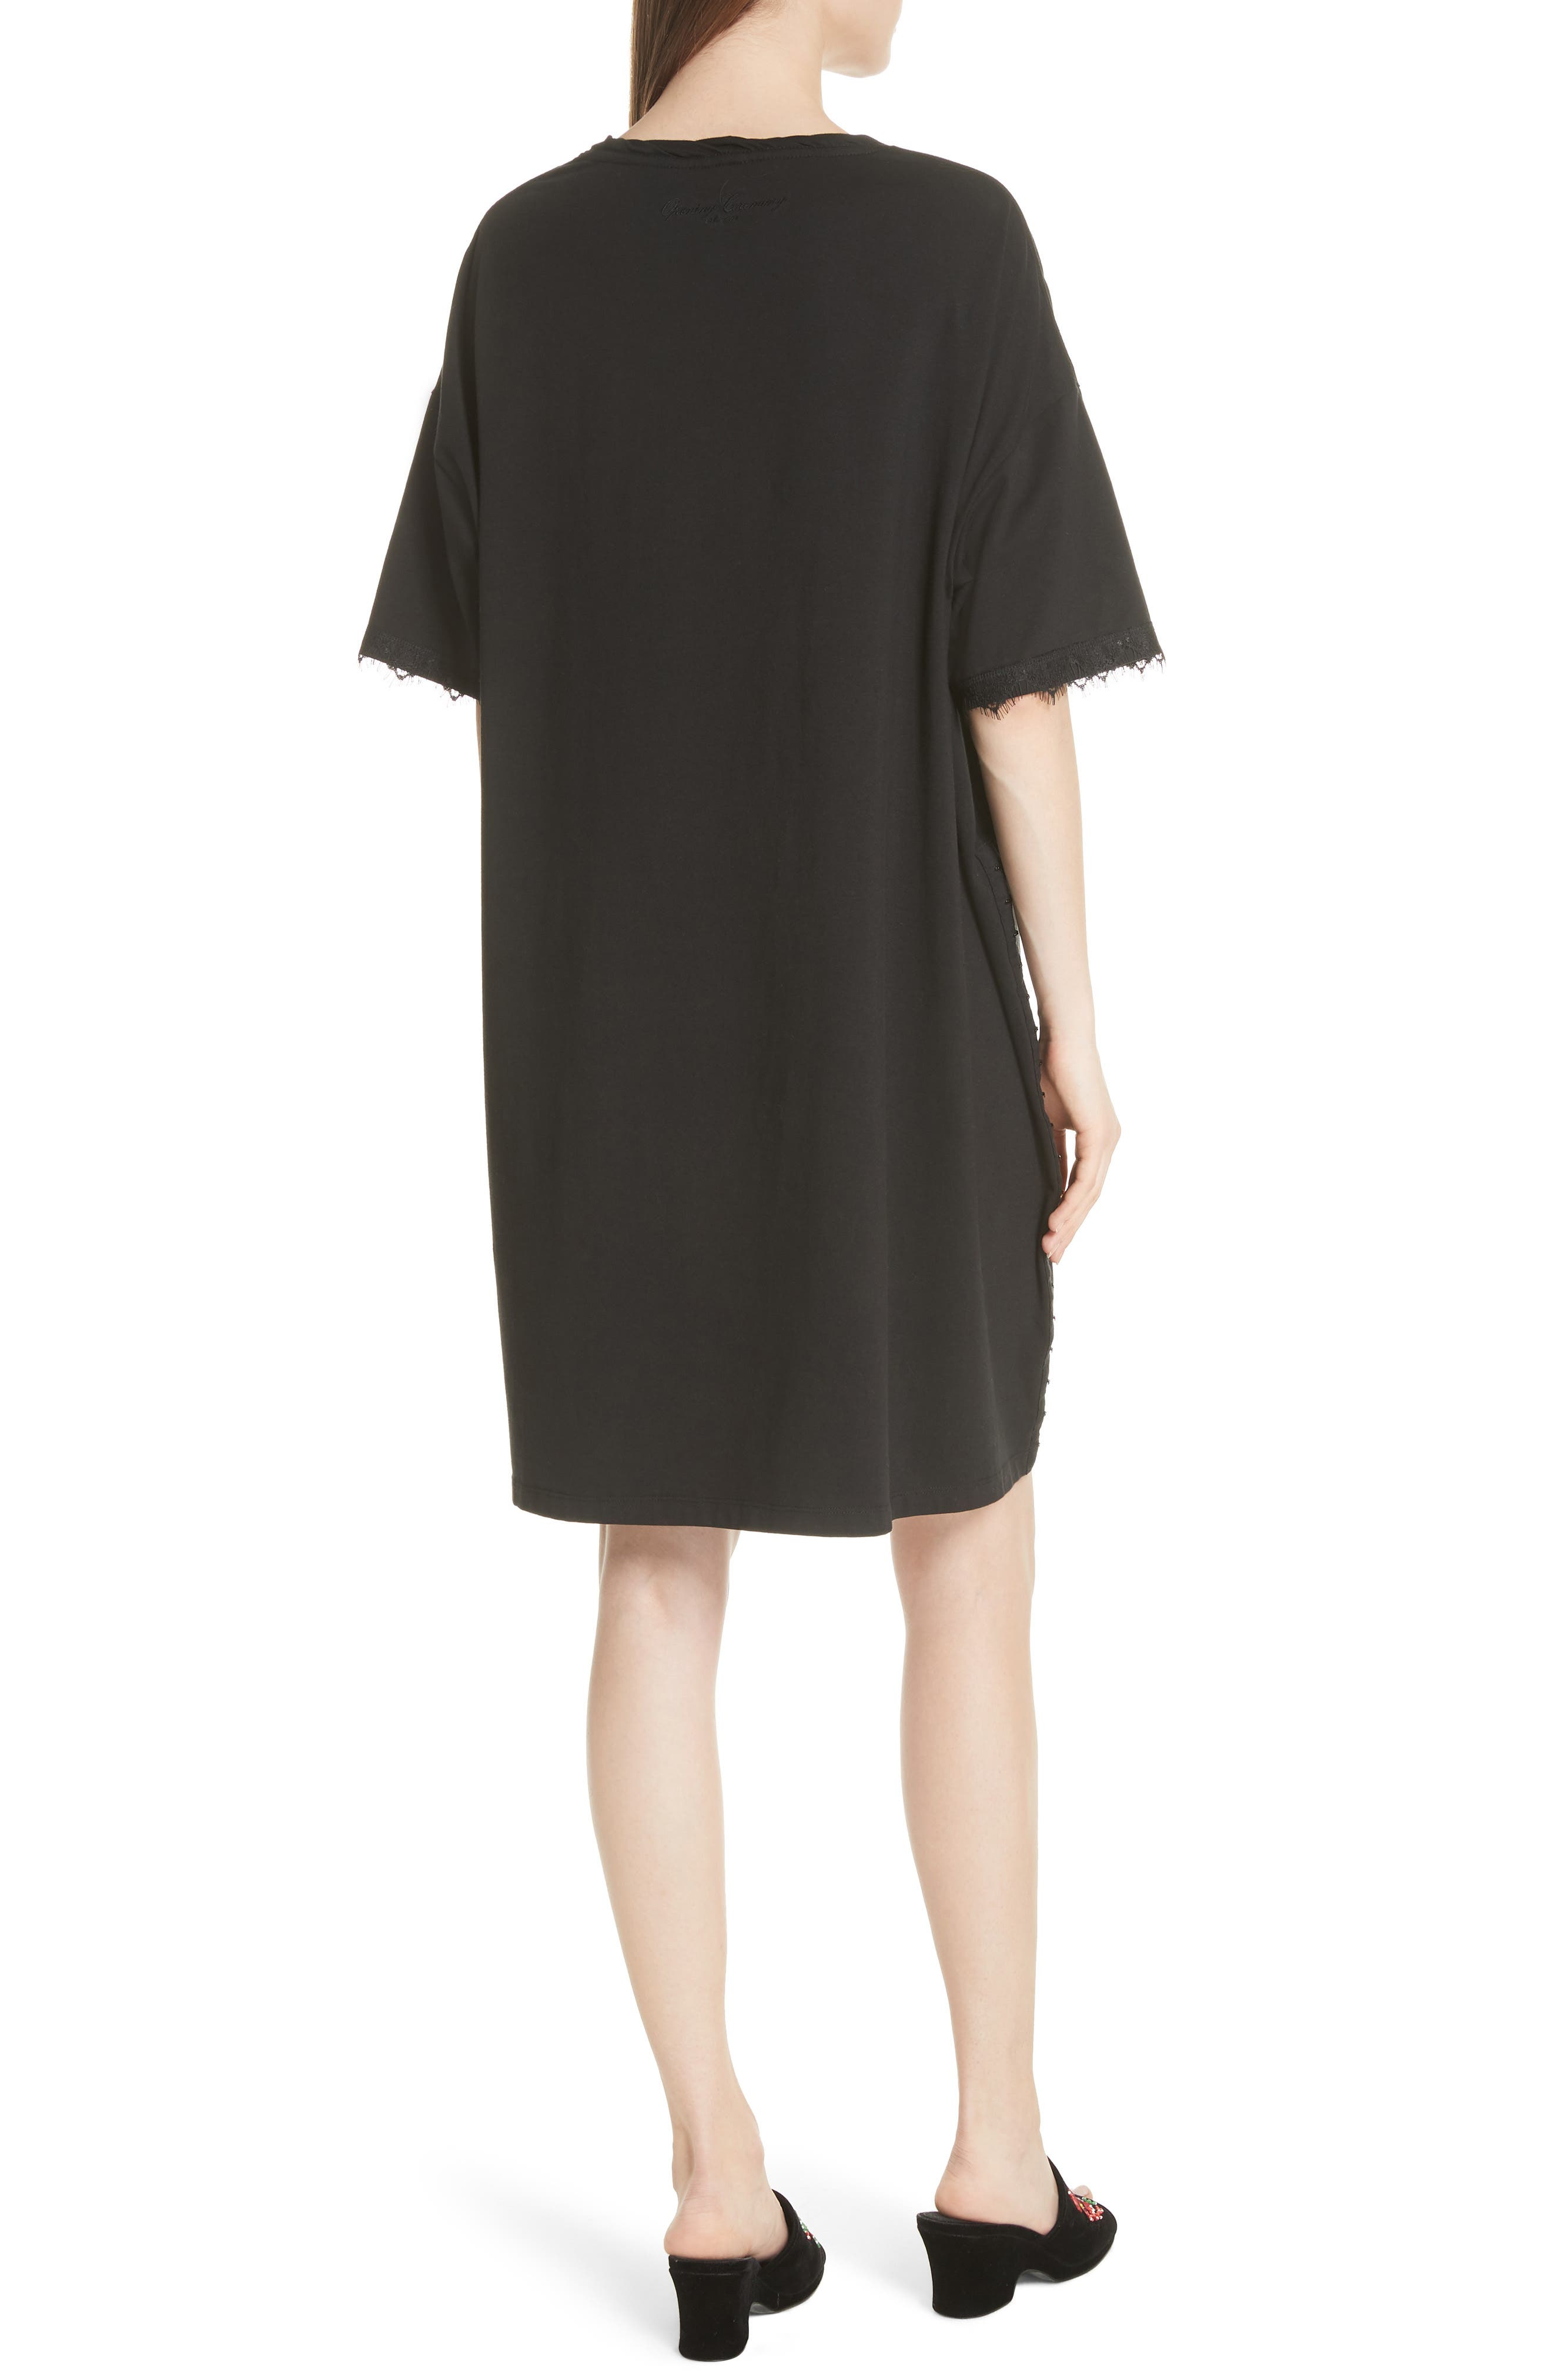 OPENING CEREMONY,                             Hook-and-Eye T-Shirt Dress,                             Alternate thumbnail 2, color,                             014